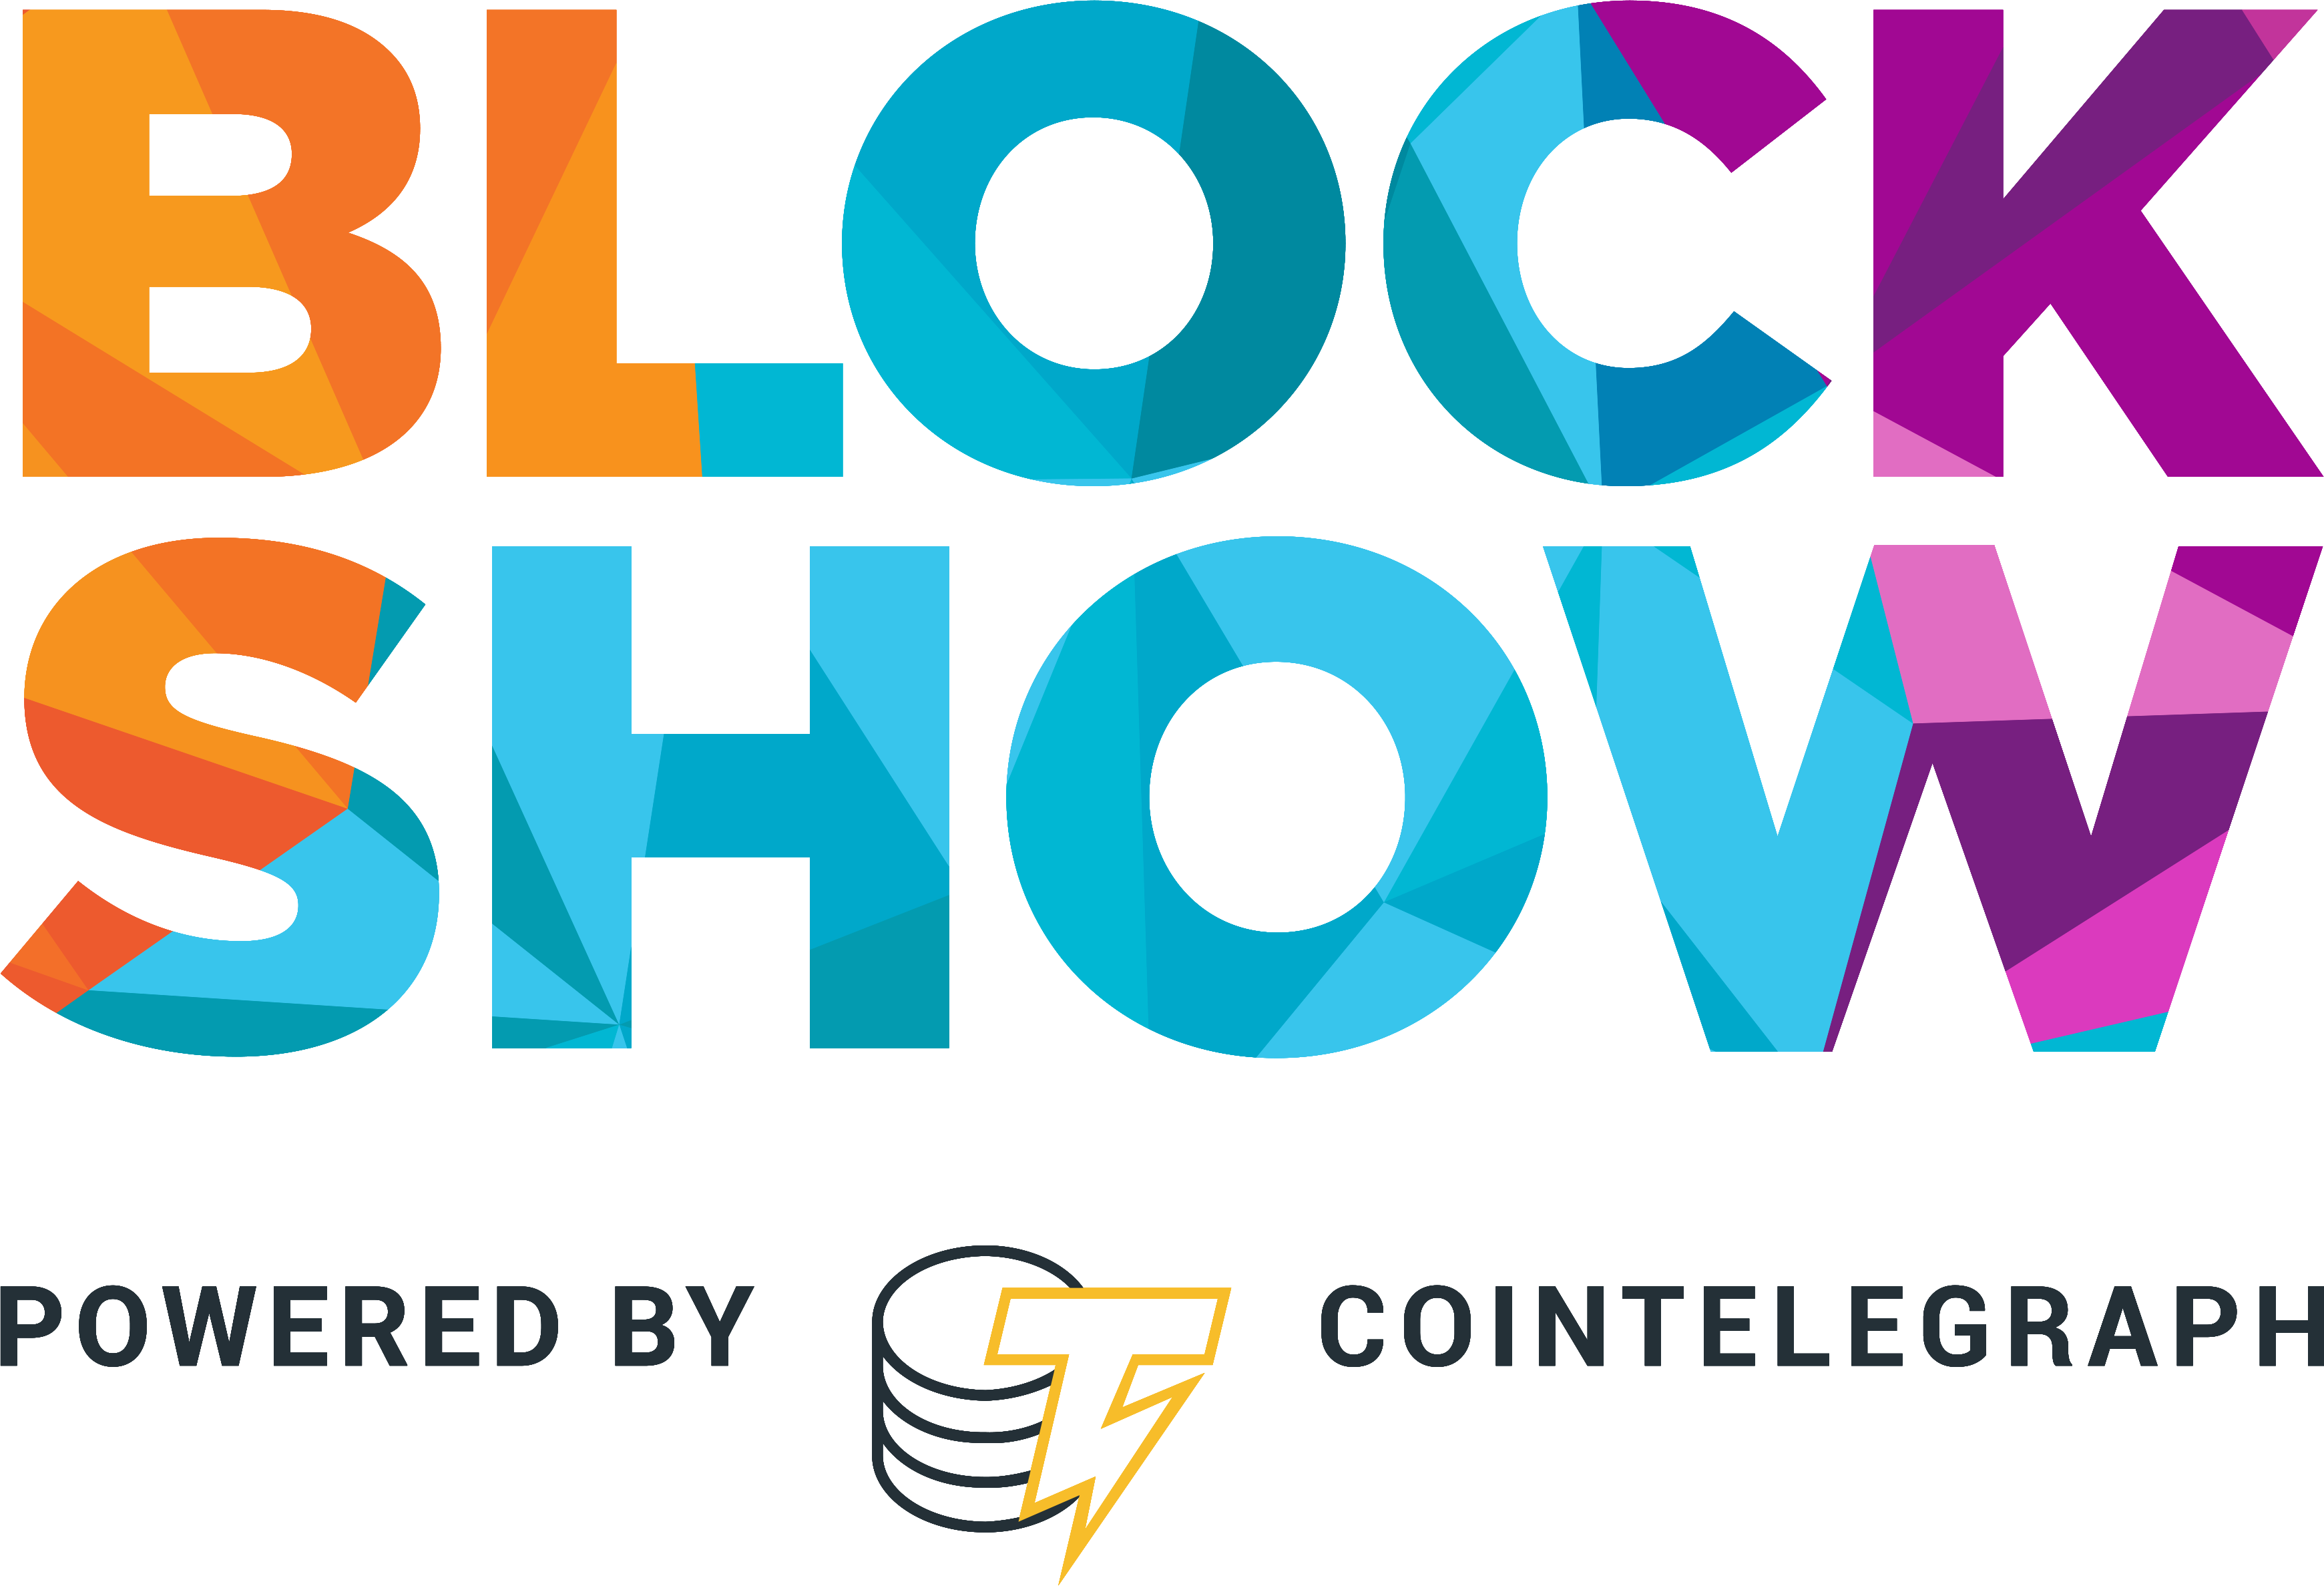 Invitation to BlockShow Medialogue (moderated by Cointelegraph)